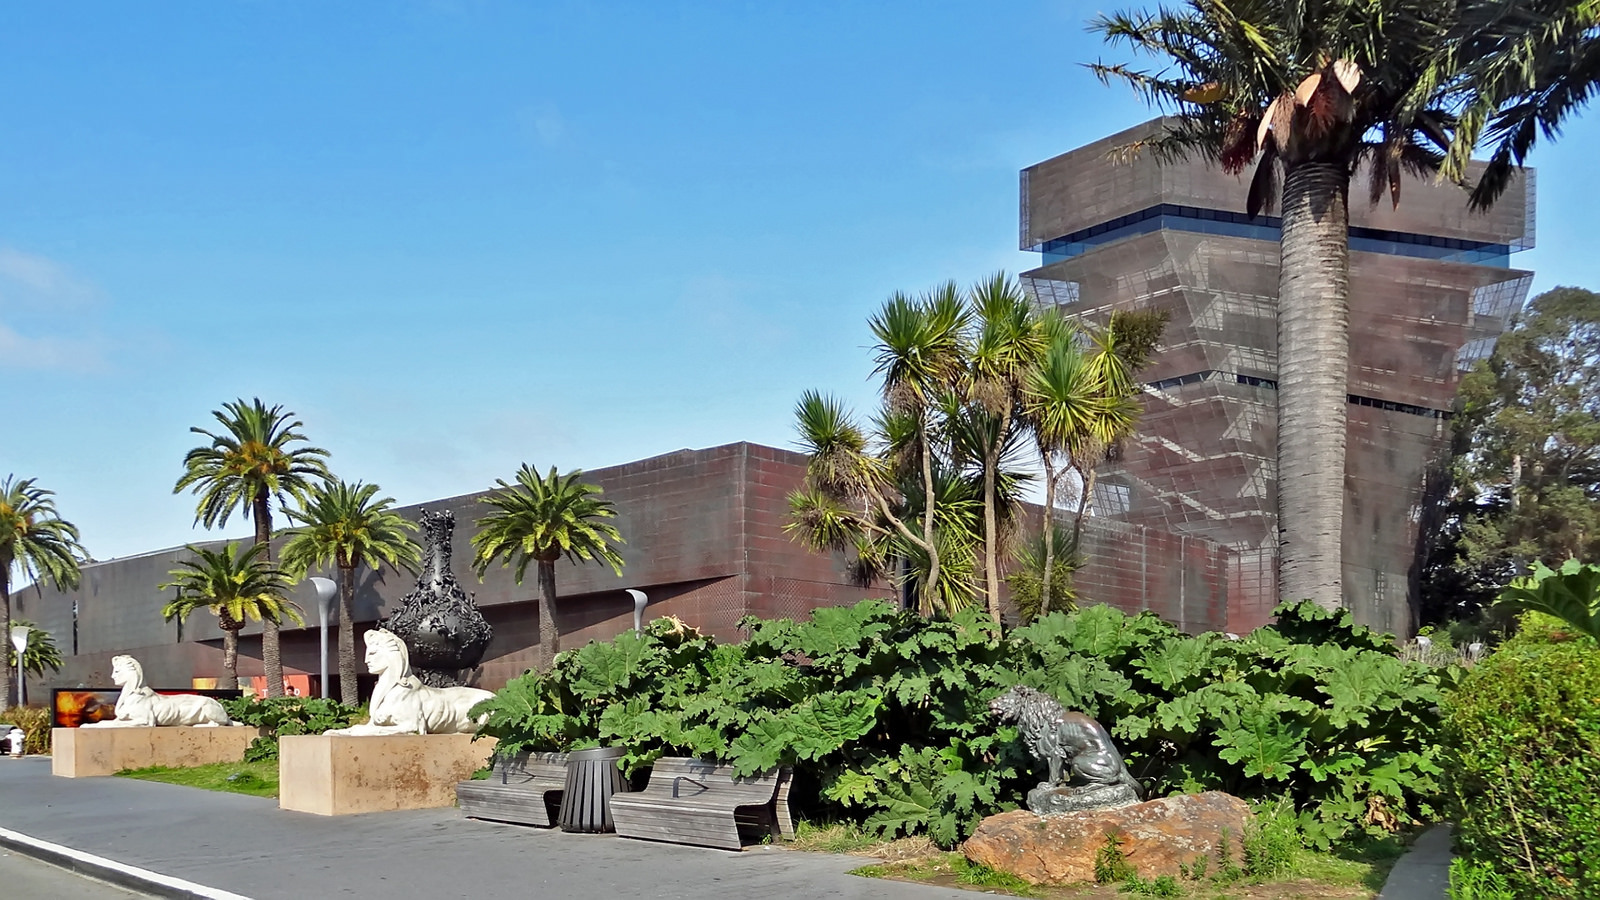 Best free museum days in San Francisco